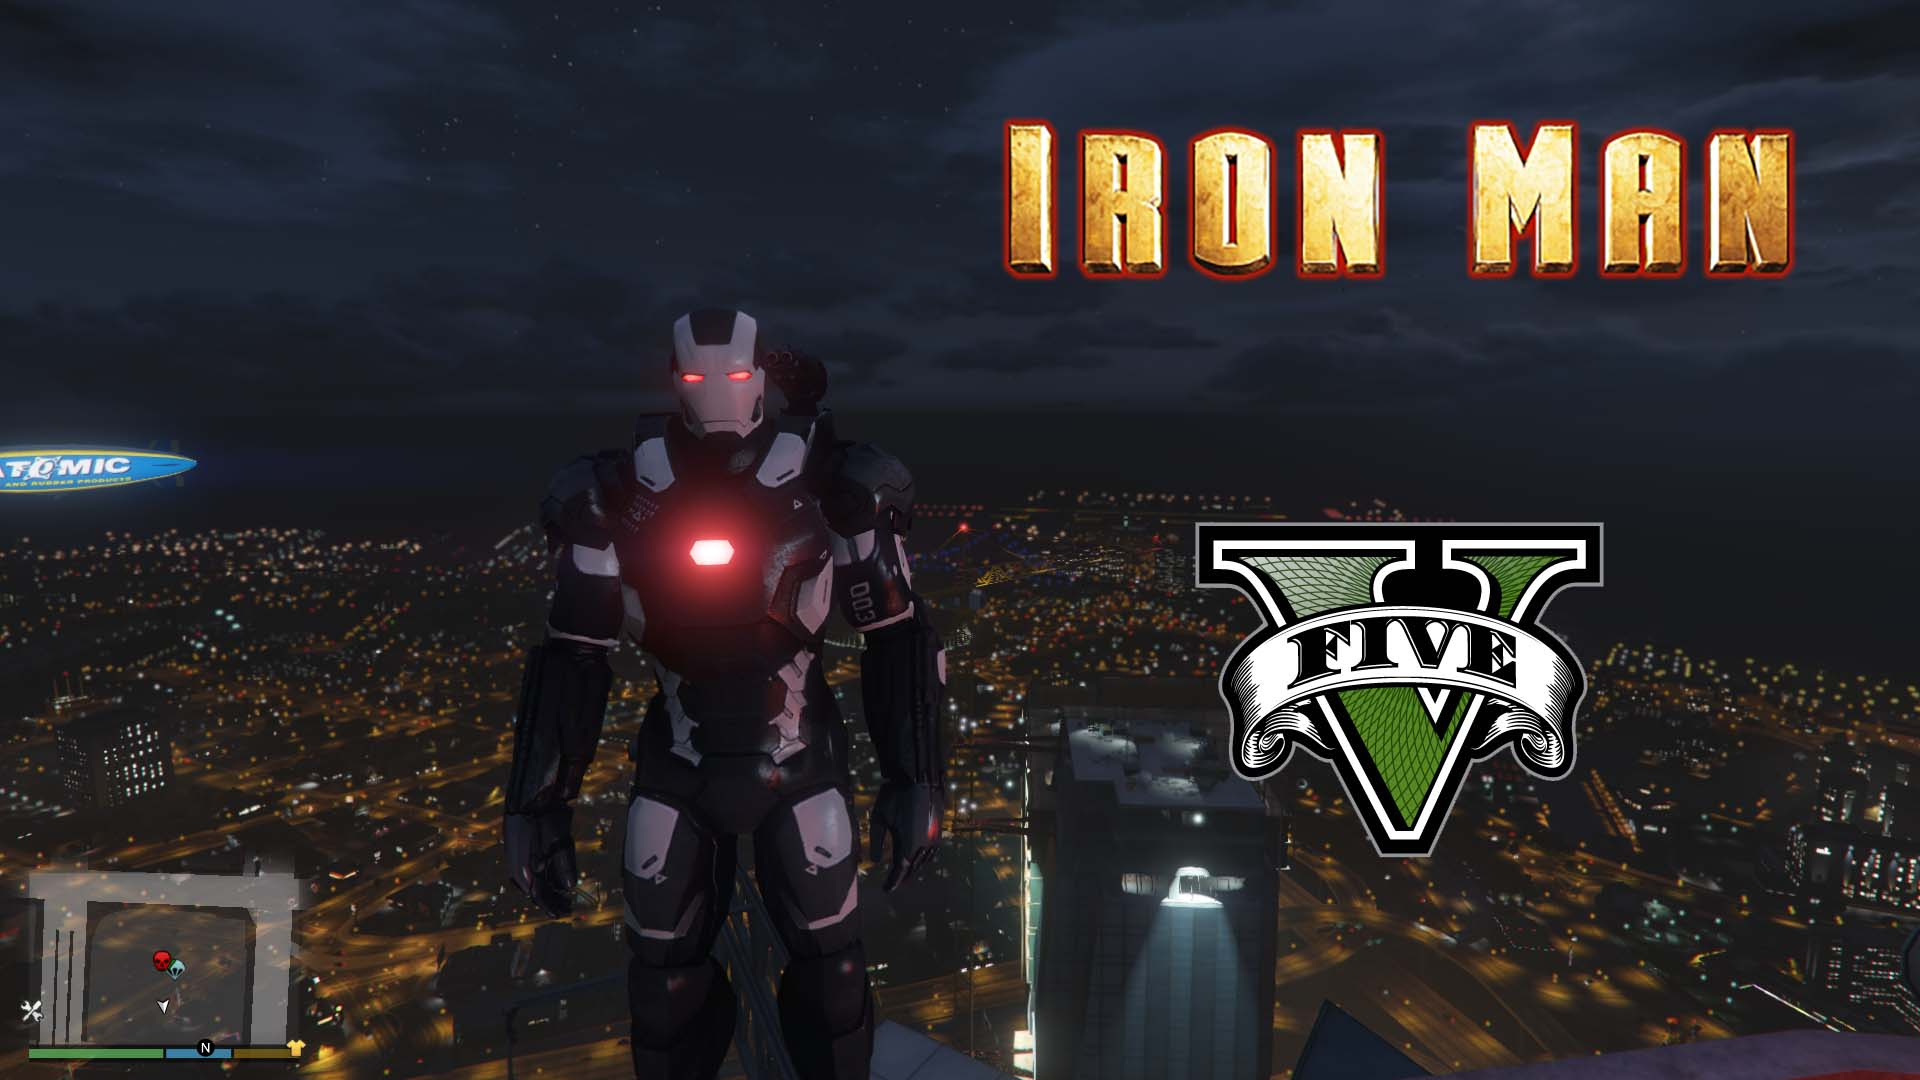 Latest GTA 5 Mods - Iron Man - GTA5-Mods com